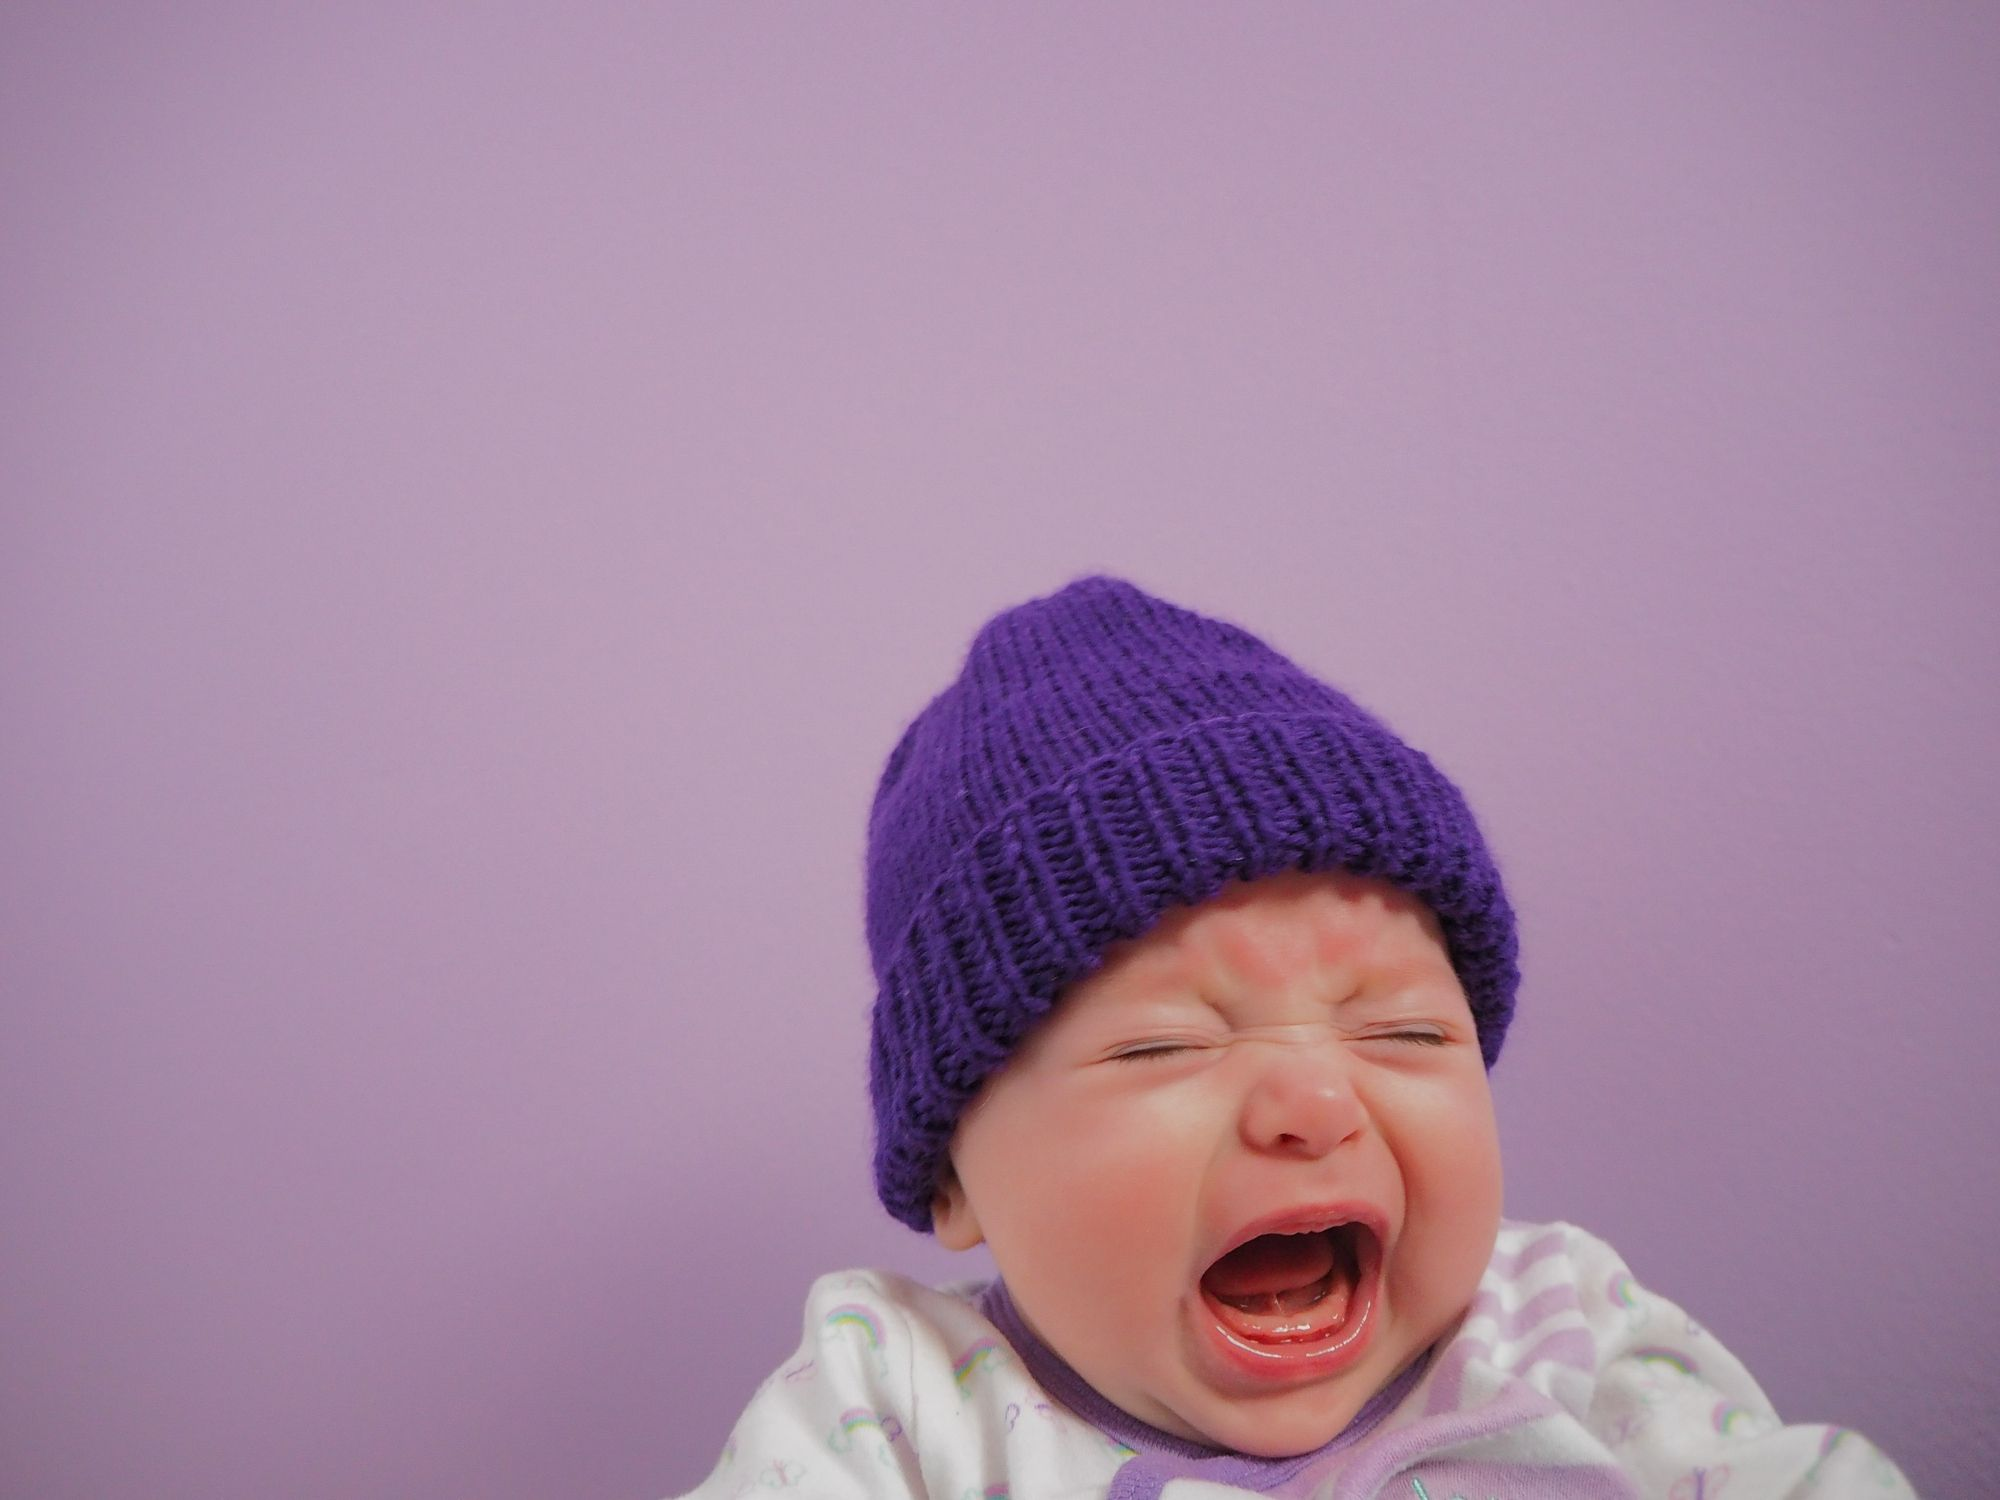 Colic in babies: what to do if your baby won't stop crying